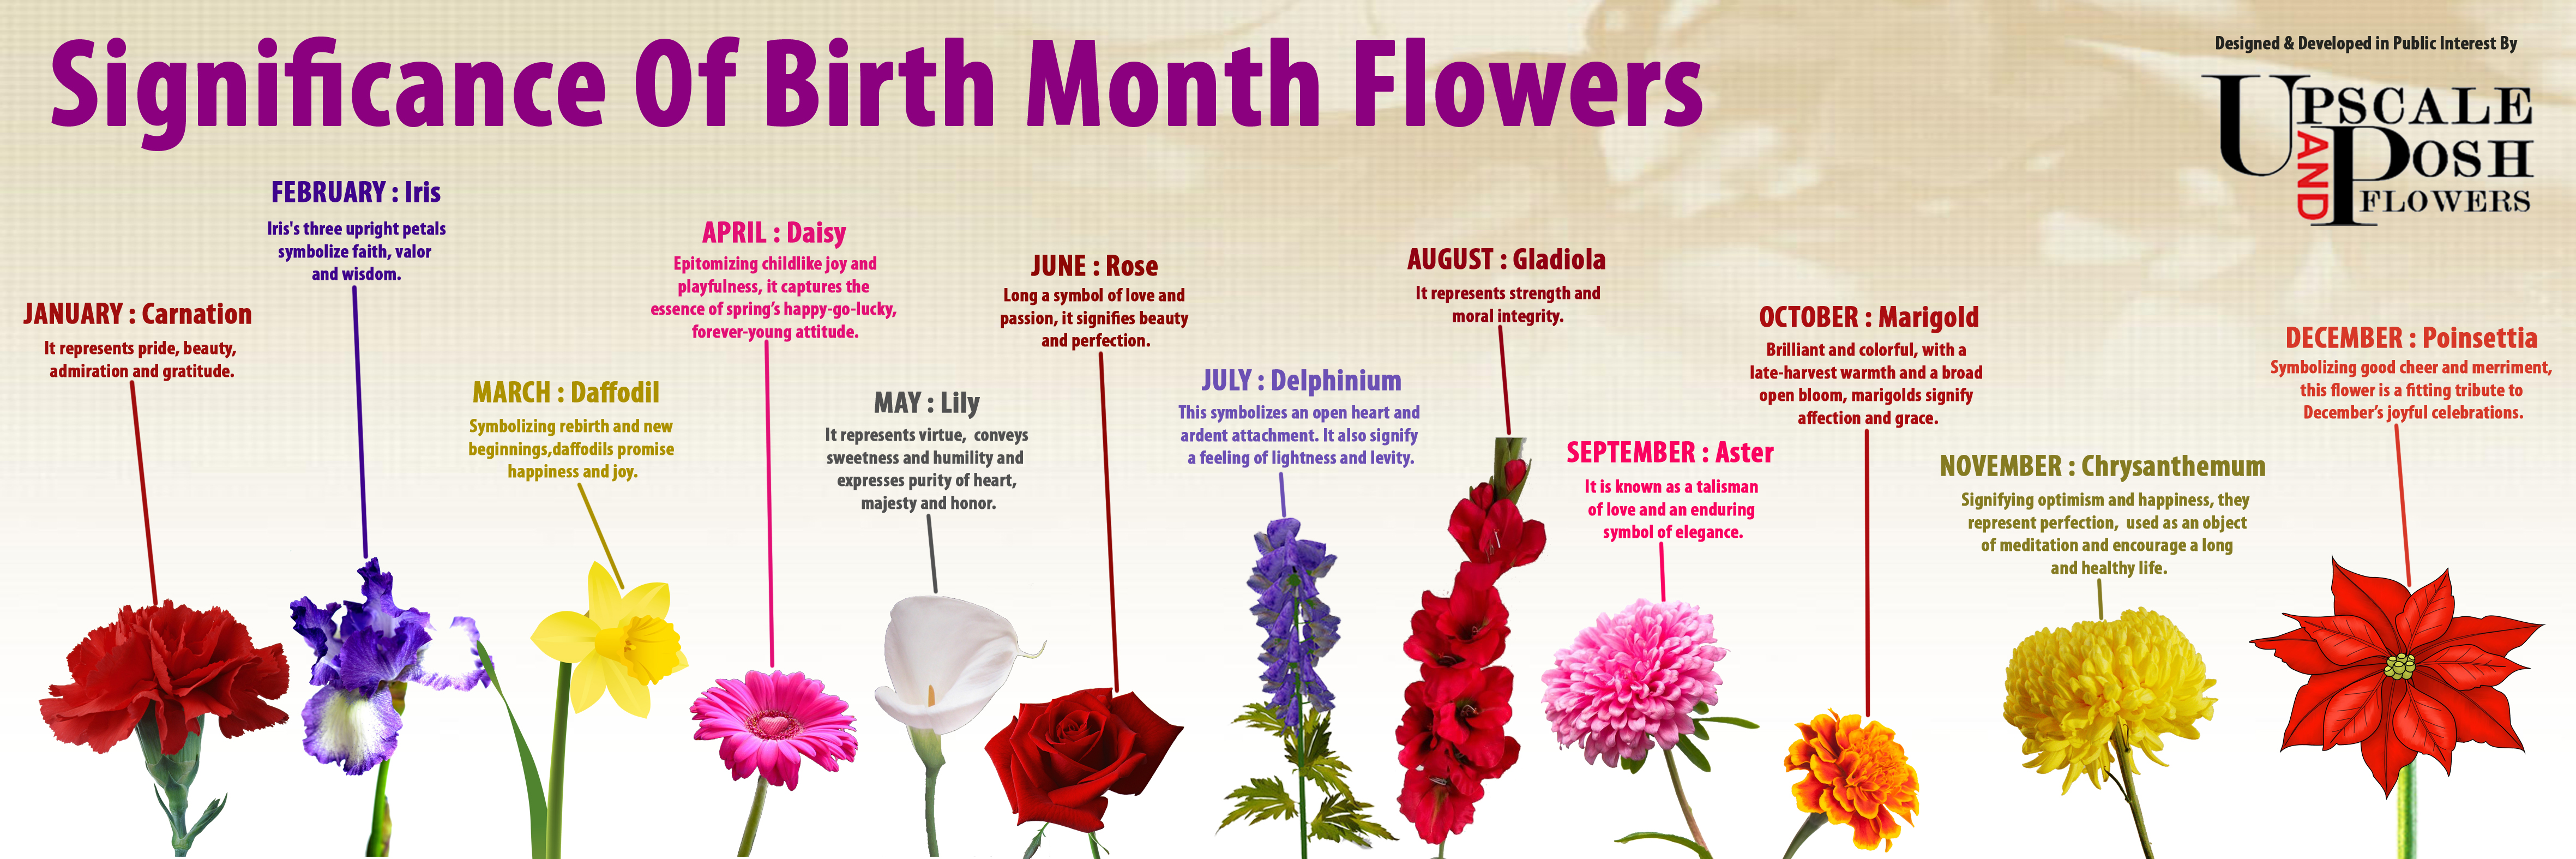 Birth month flowers visual izmirmasajfo Image collections